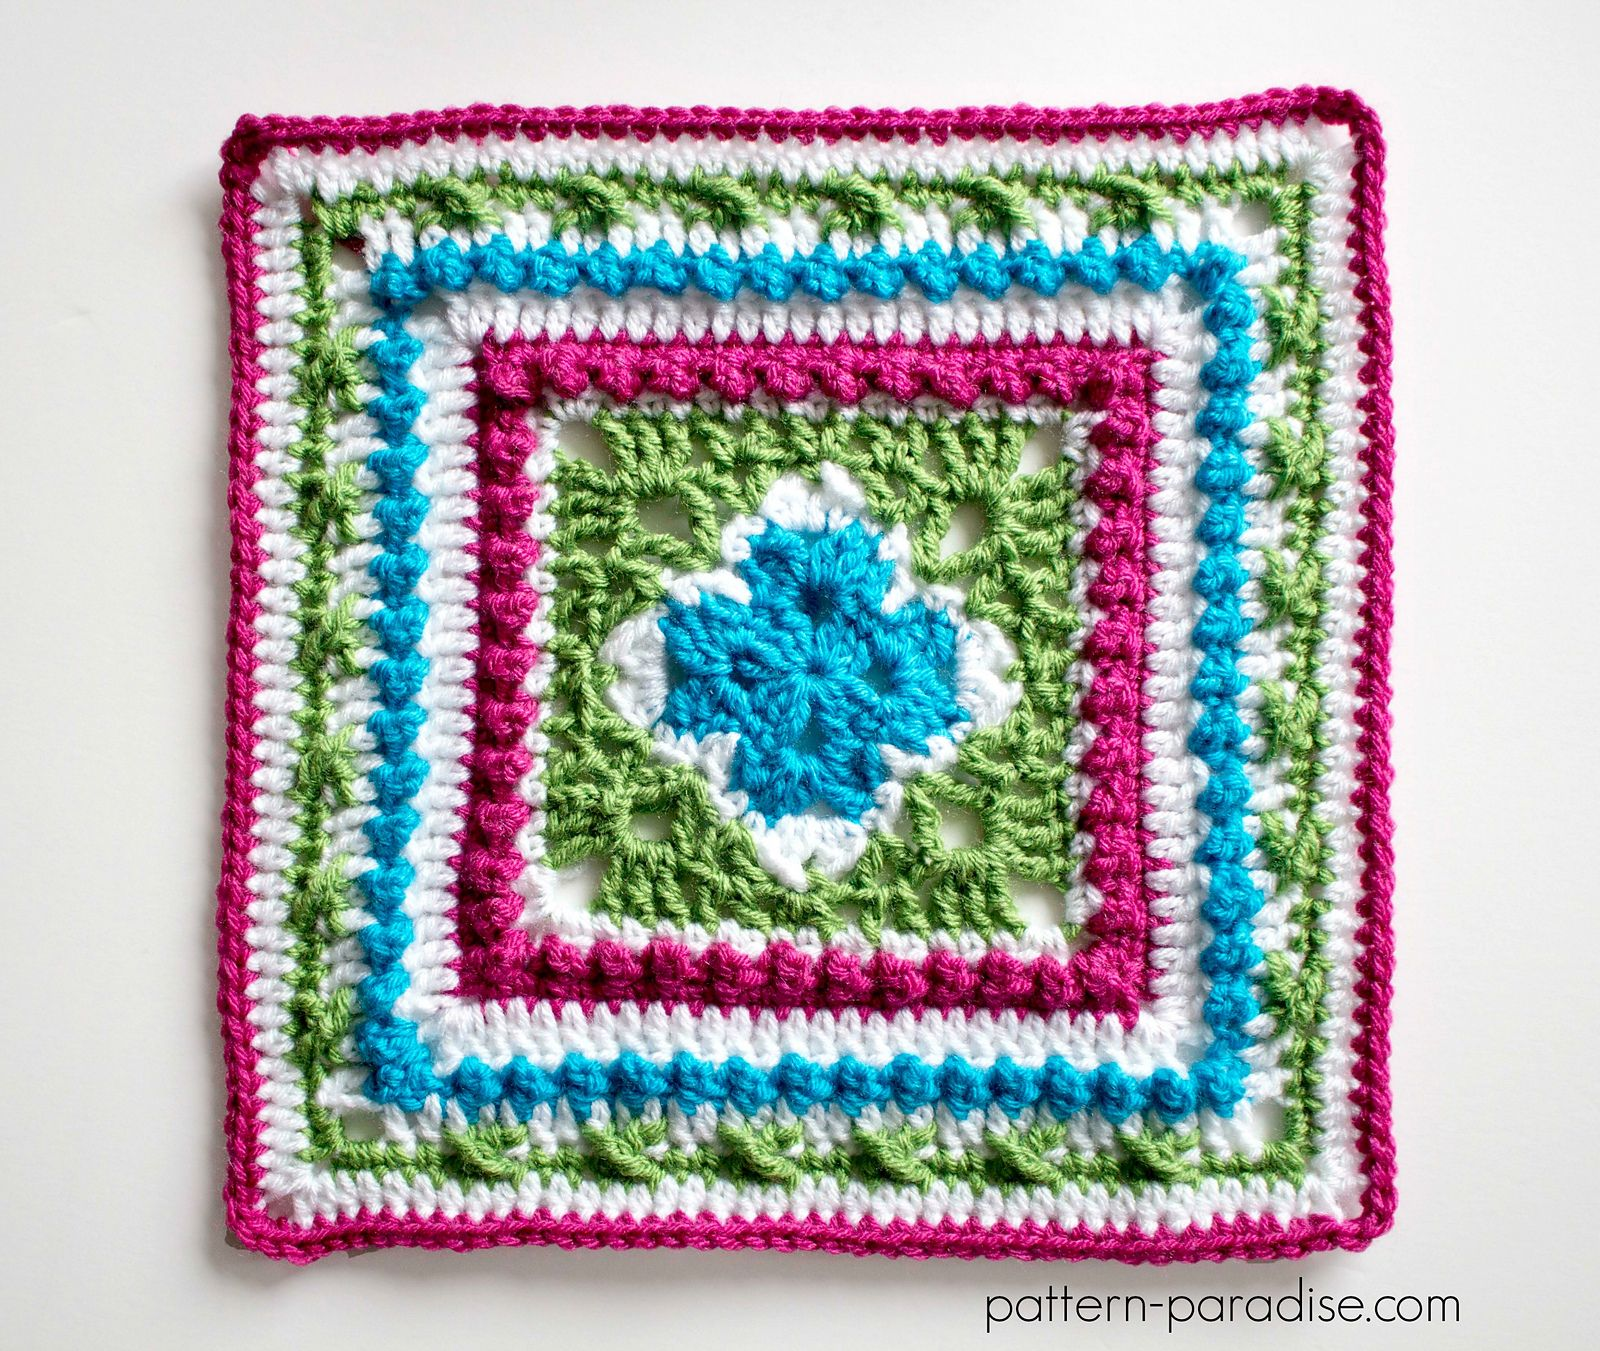 English Garden Afghan Square pattern by Maria Bittner | Strick ...